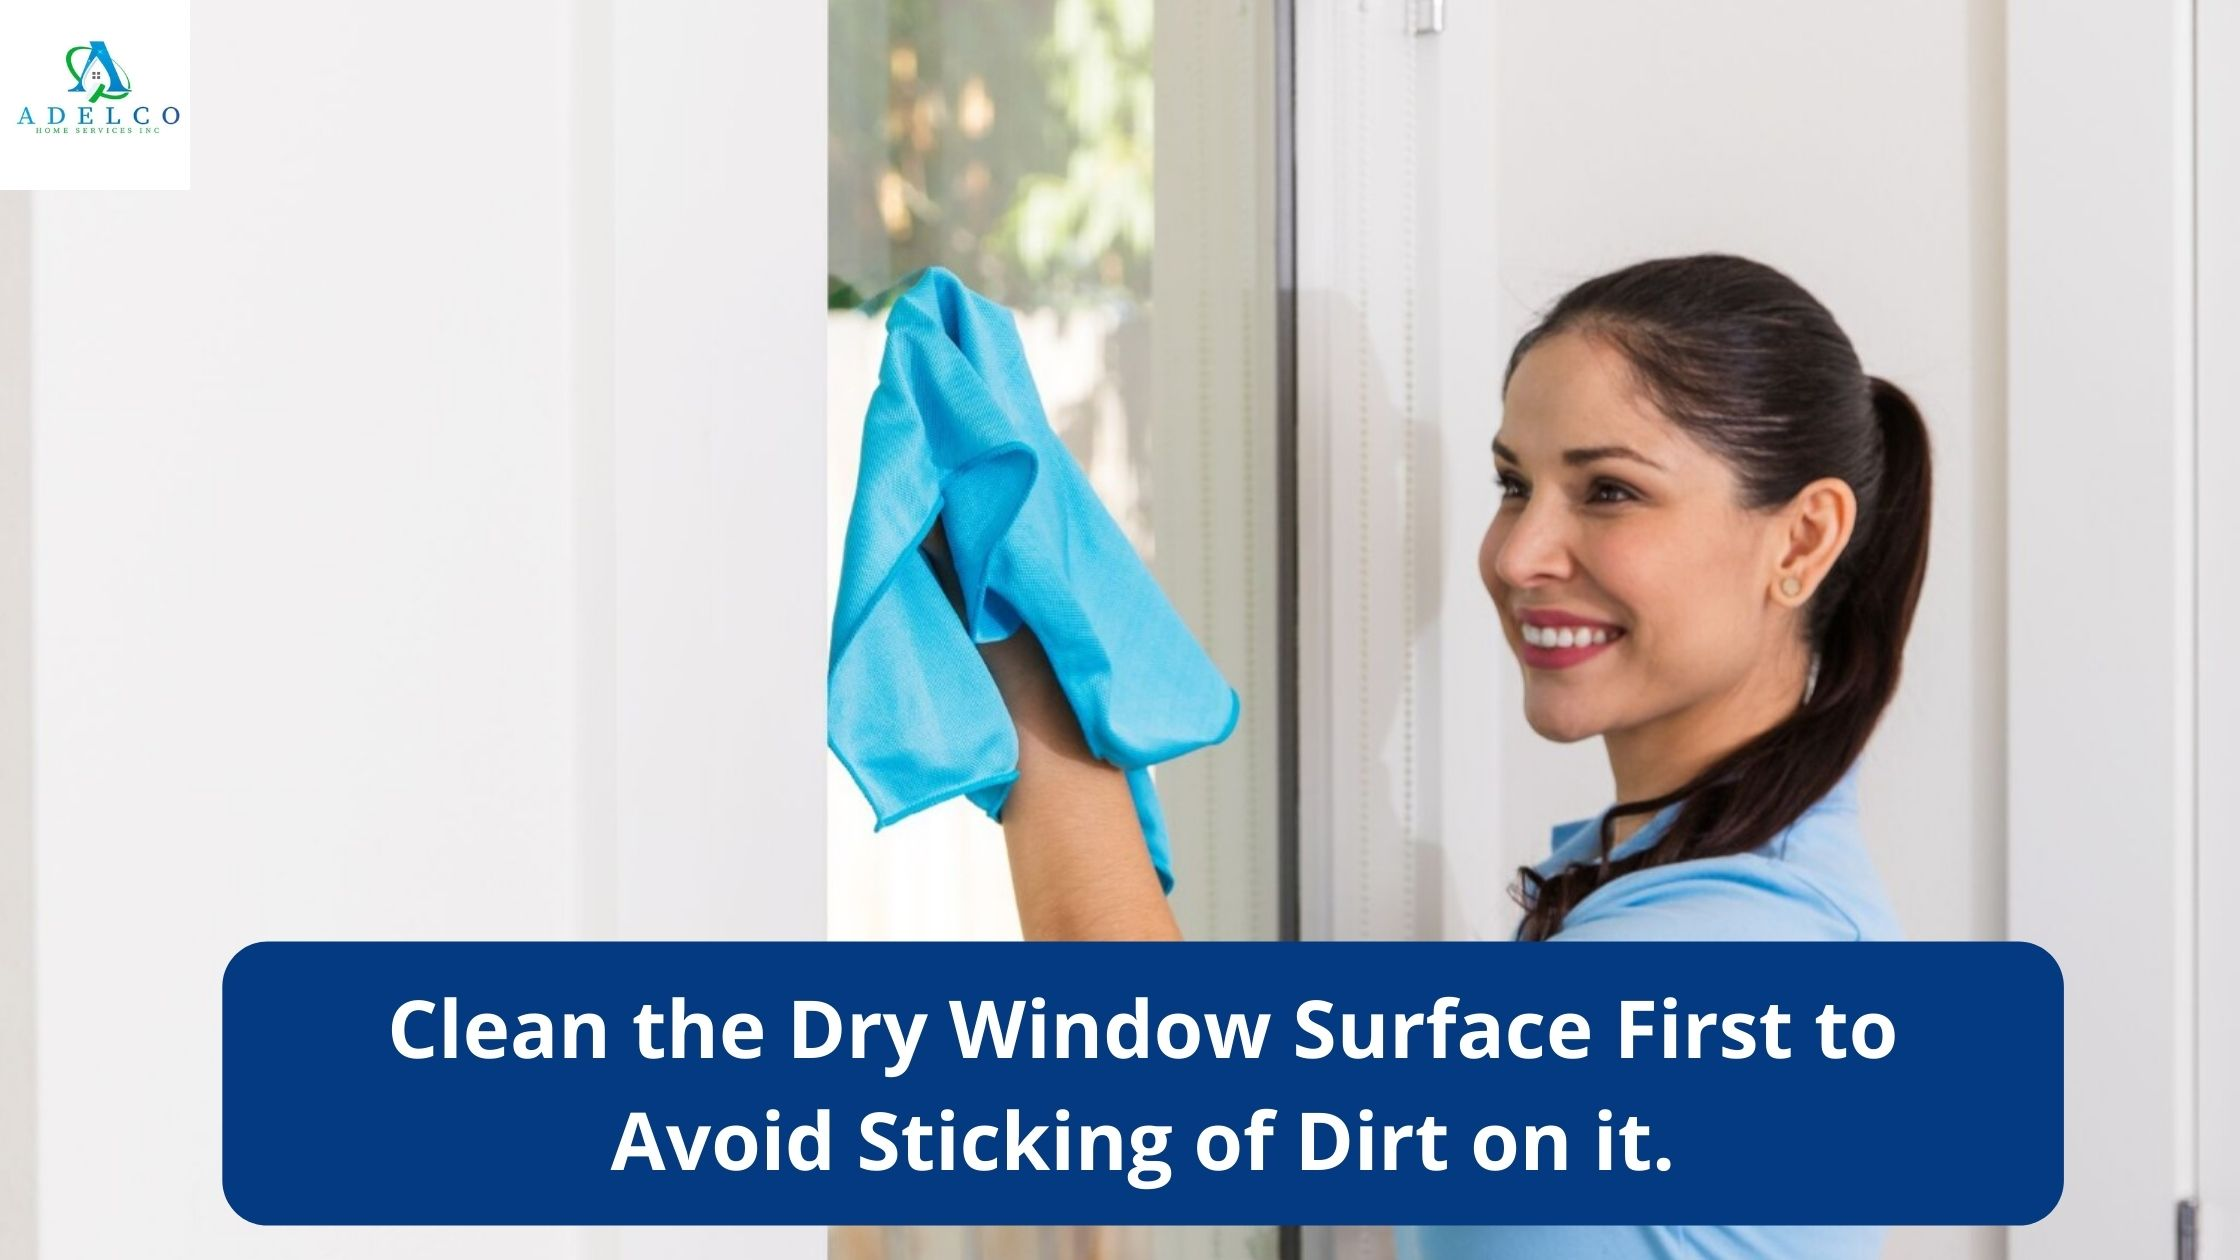 Clean the Dry Window Surface First to Avoid Sticking of Dirt